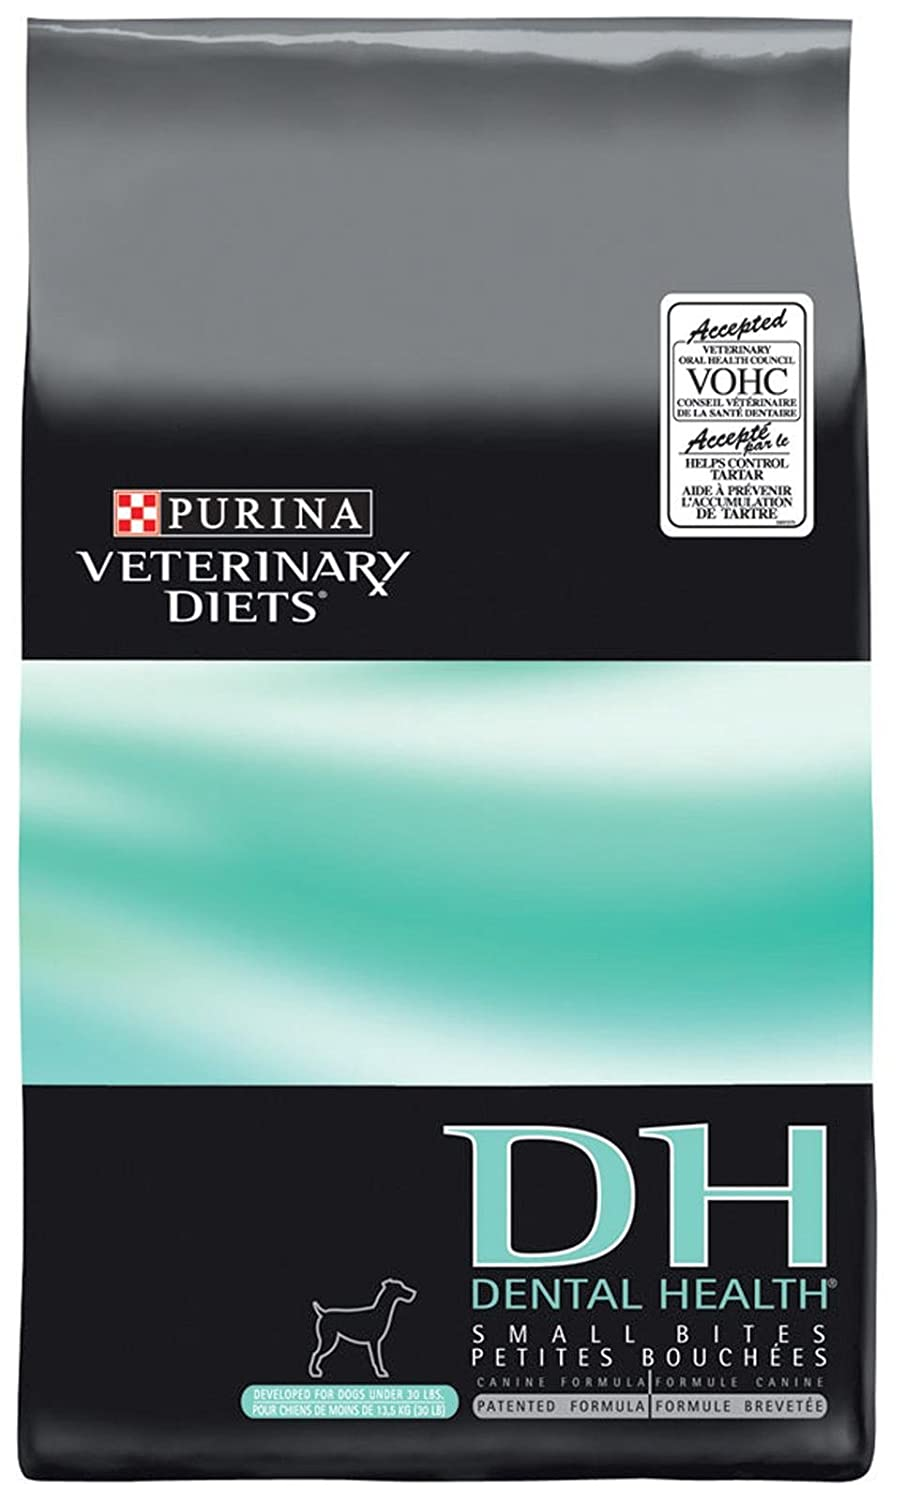 Purina Veterinary Diets Canine (Small Bites) DH Dental Health - 6lb